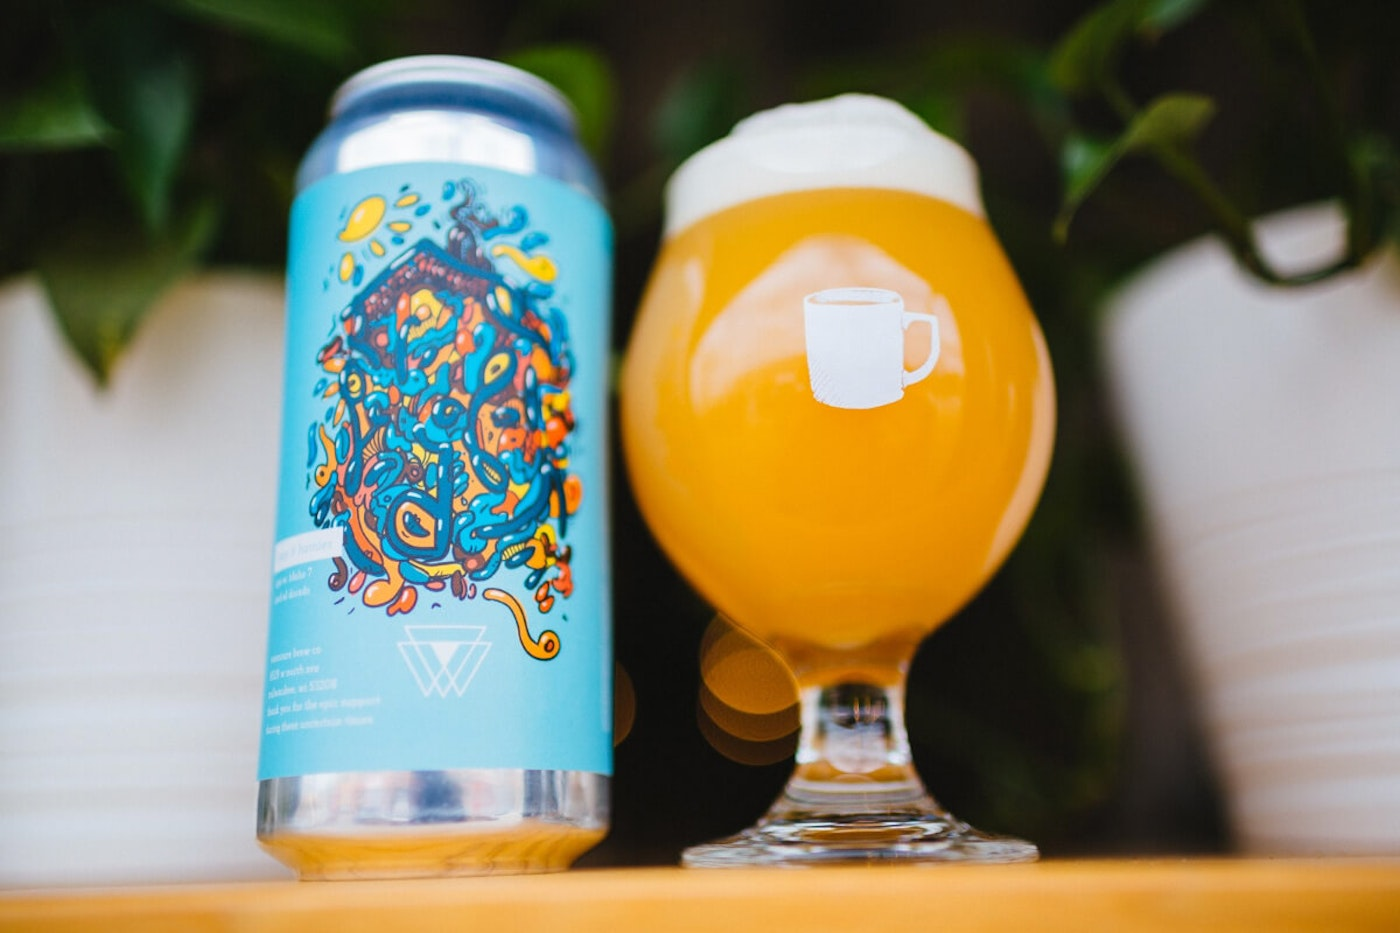 Vennture Brew Co. in Milwaukee released Stay at Homies, a New England India pale ale, last week. Its name was inspired by the coronavirus outbreak. (Photo courtesy Vennture Brew Co.)